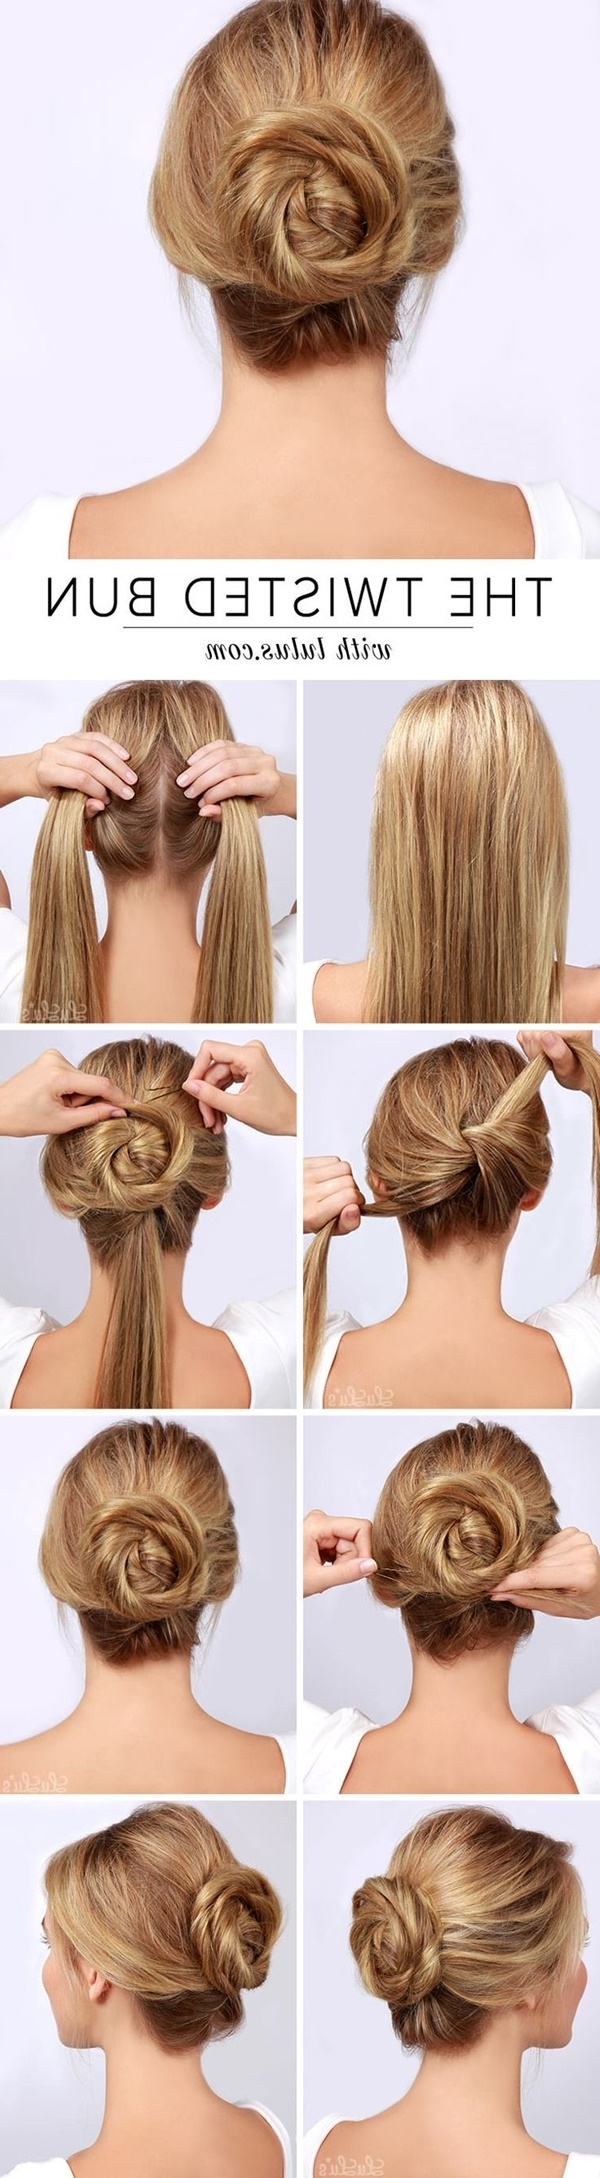 101 Cute & Easy Bun Hairstyles For Long Hair And Medium Hair Intended For Cute Updo Hairstyles For Medium Hair (View 3 of 15)